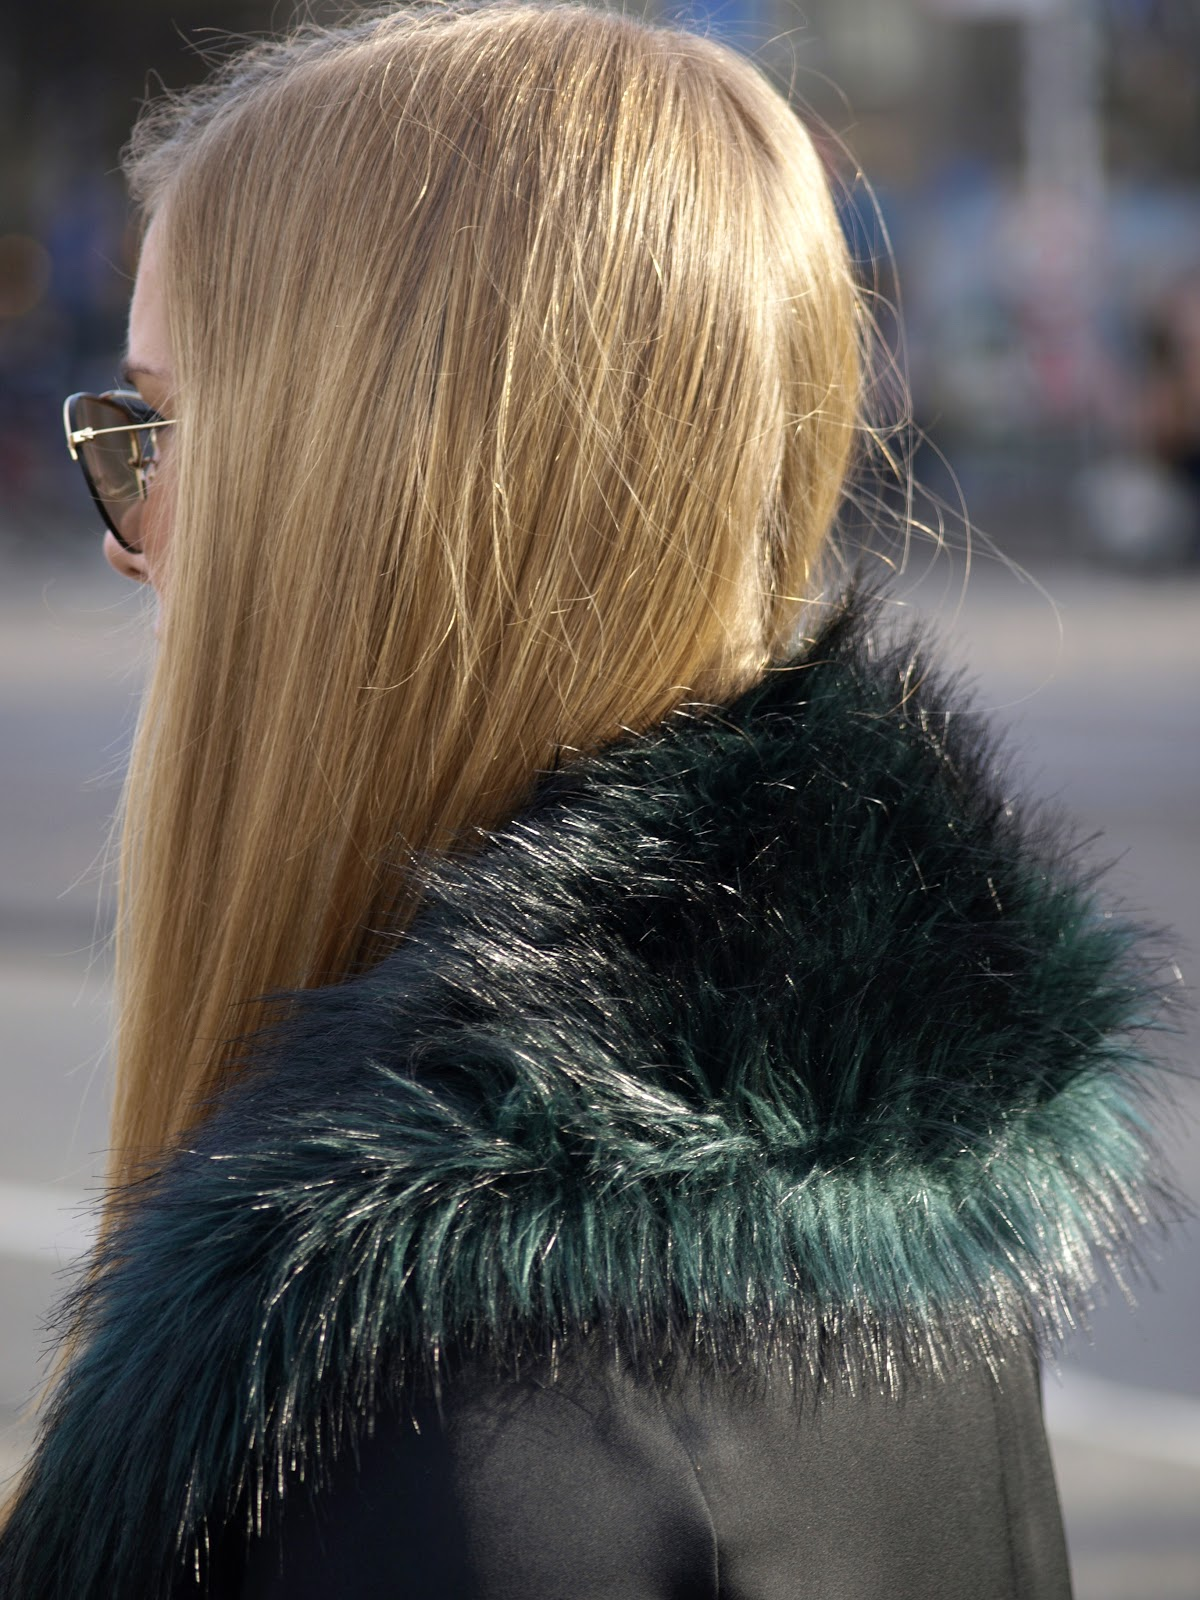 deau, dominique, candido, blogger, blog, fashion, outfit, inspiration, post, topshop, mango, zara, miu miu, items, prada, sunglasses, blonde, mode